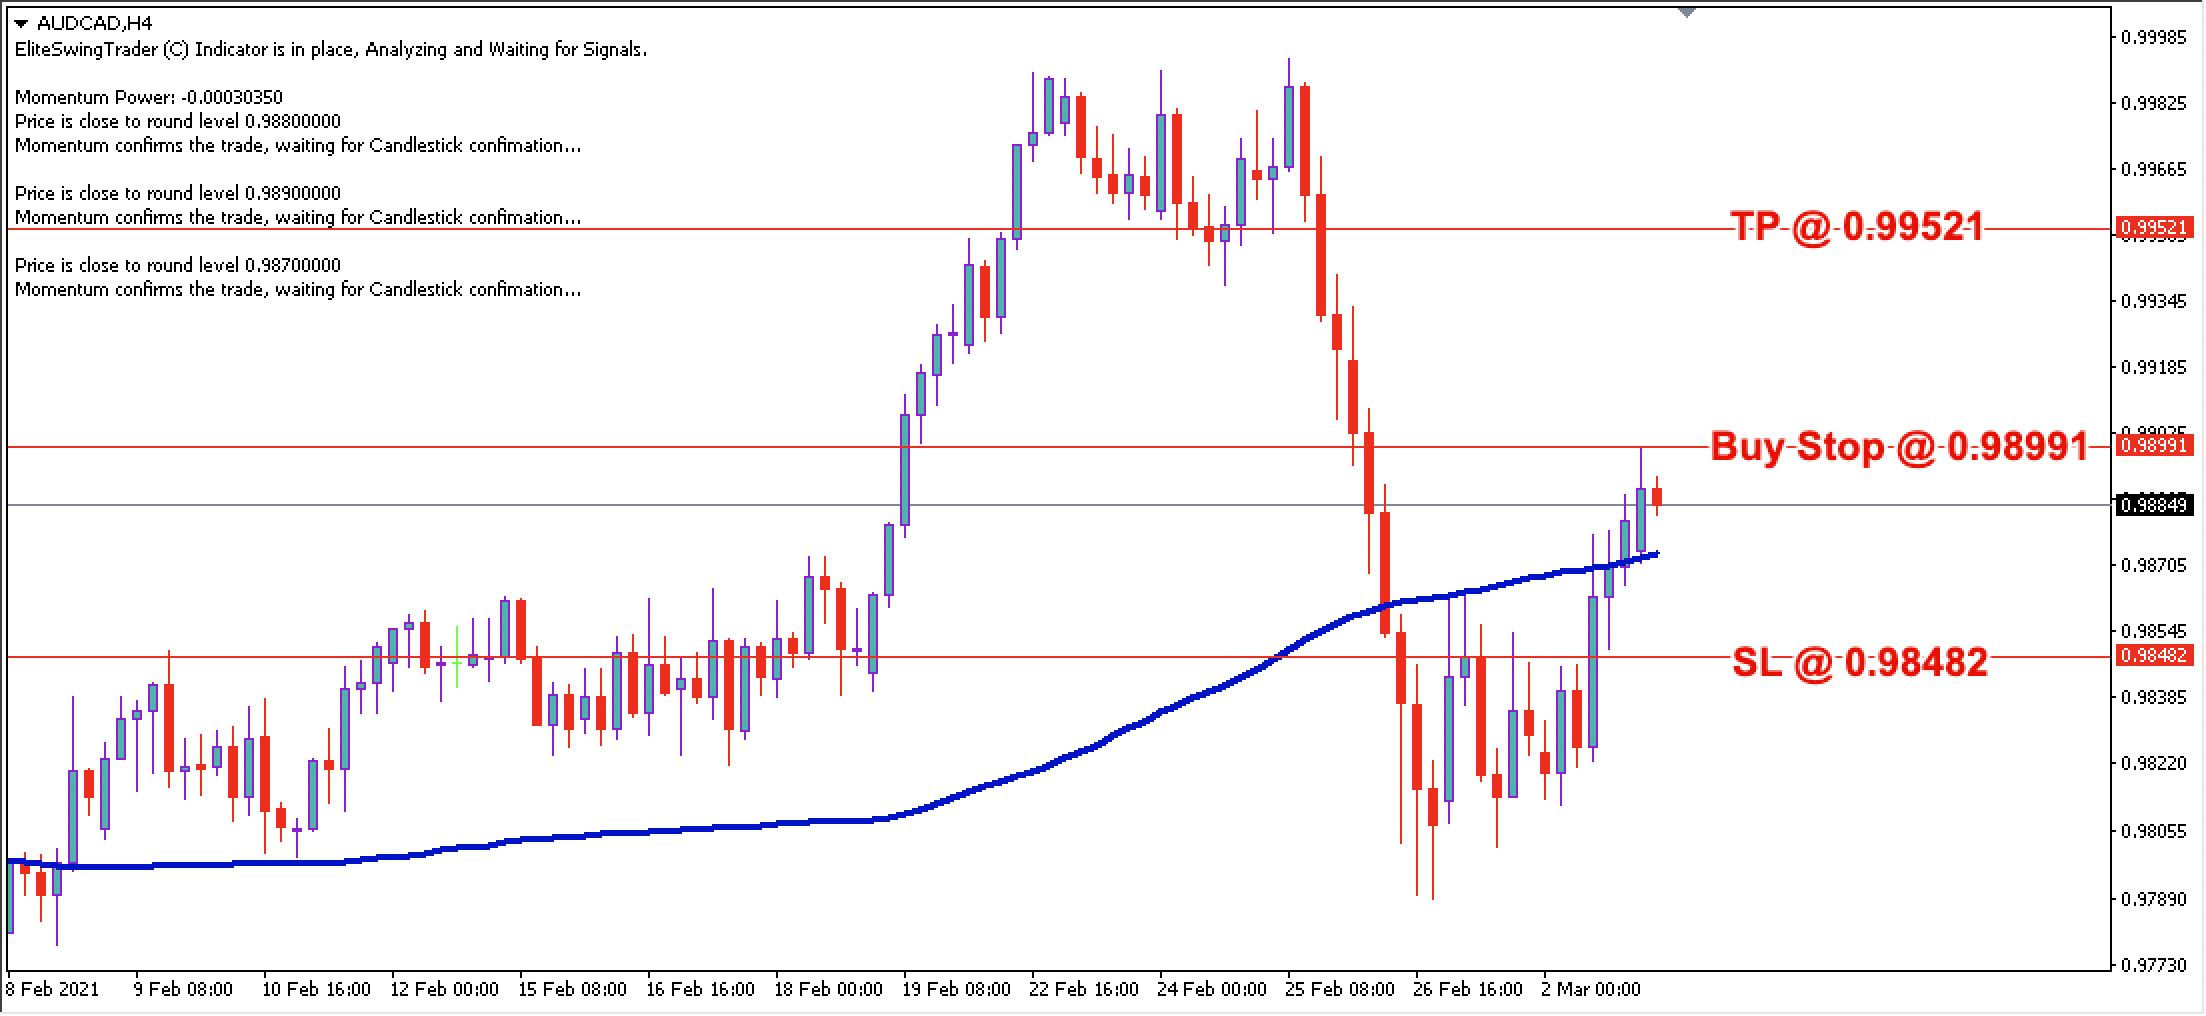 AUD/CAD Daily Price Forecast - 3rd March 2021